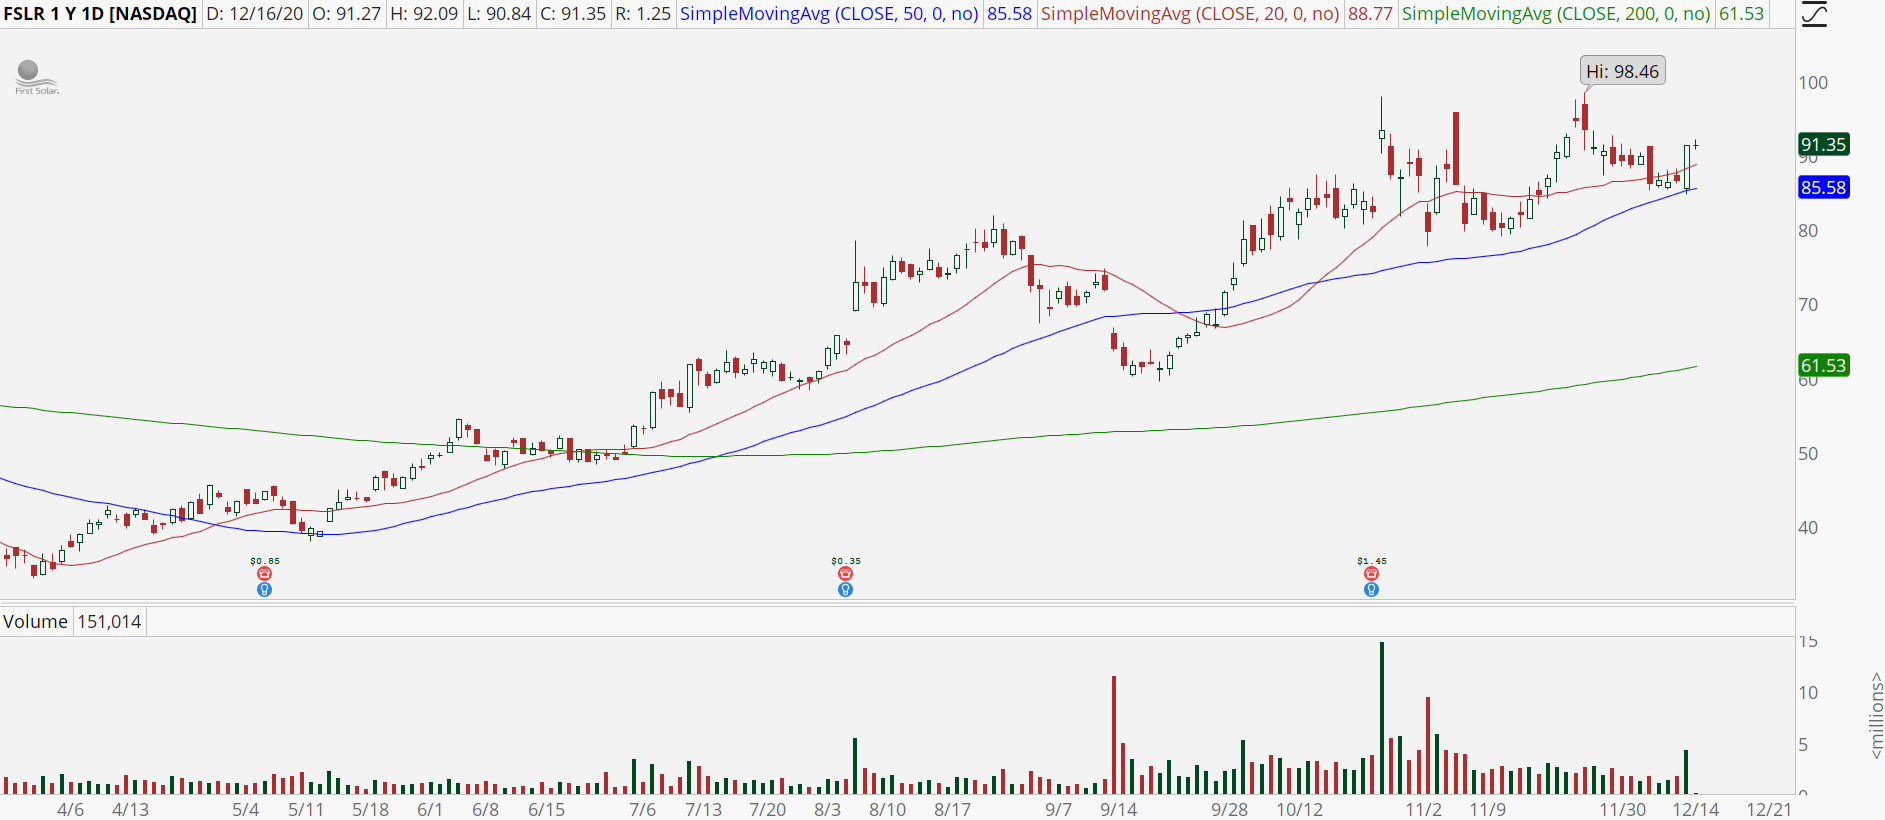 First Solar (FSLR) stock chart with bounce off the 50-day